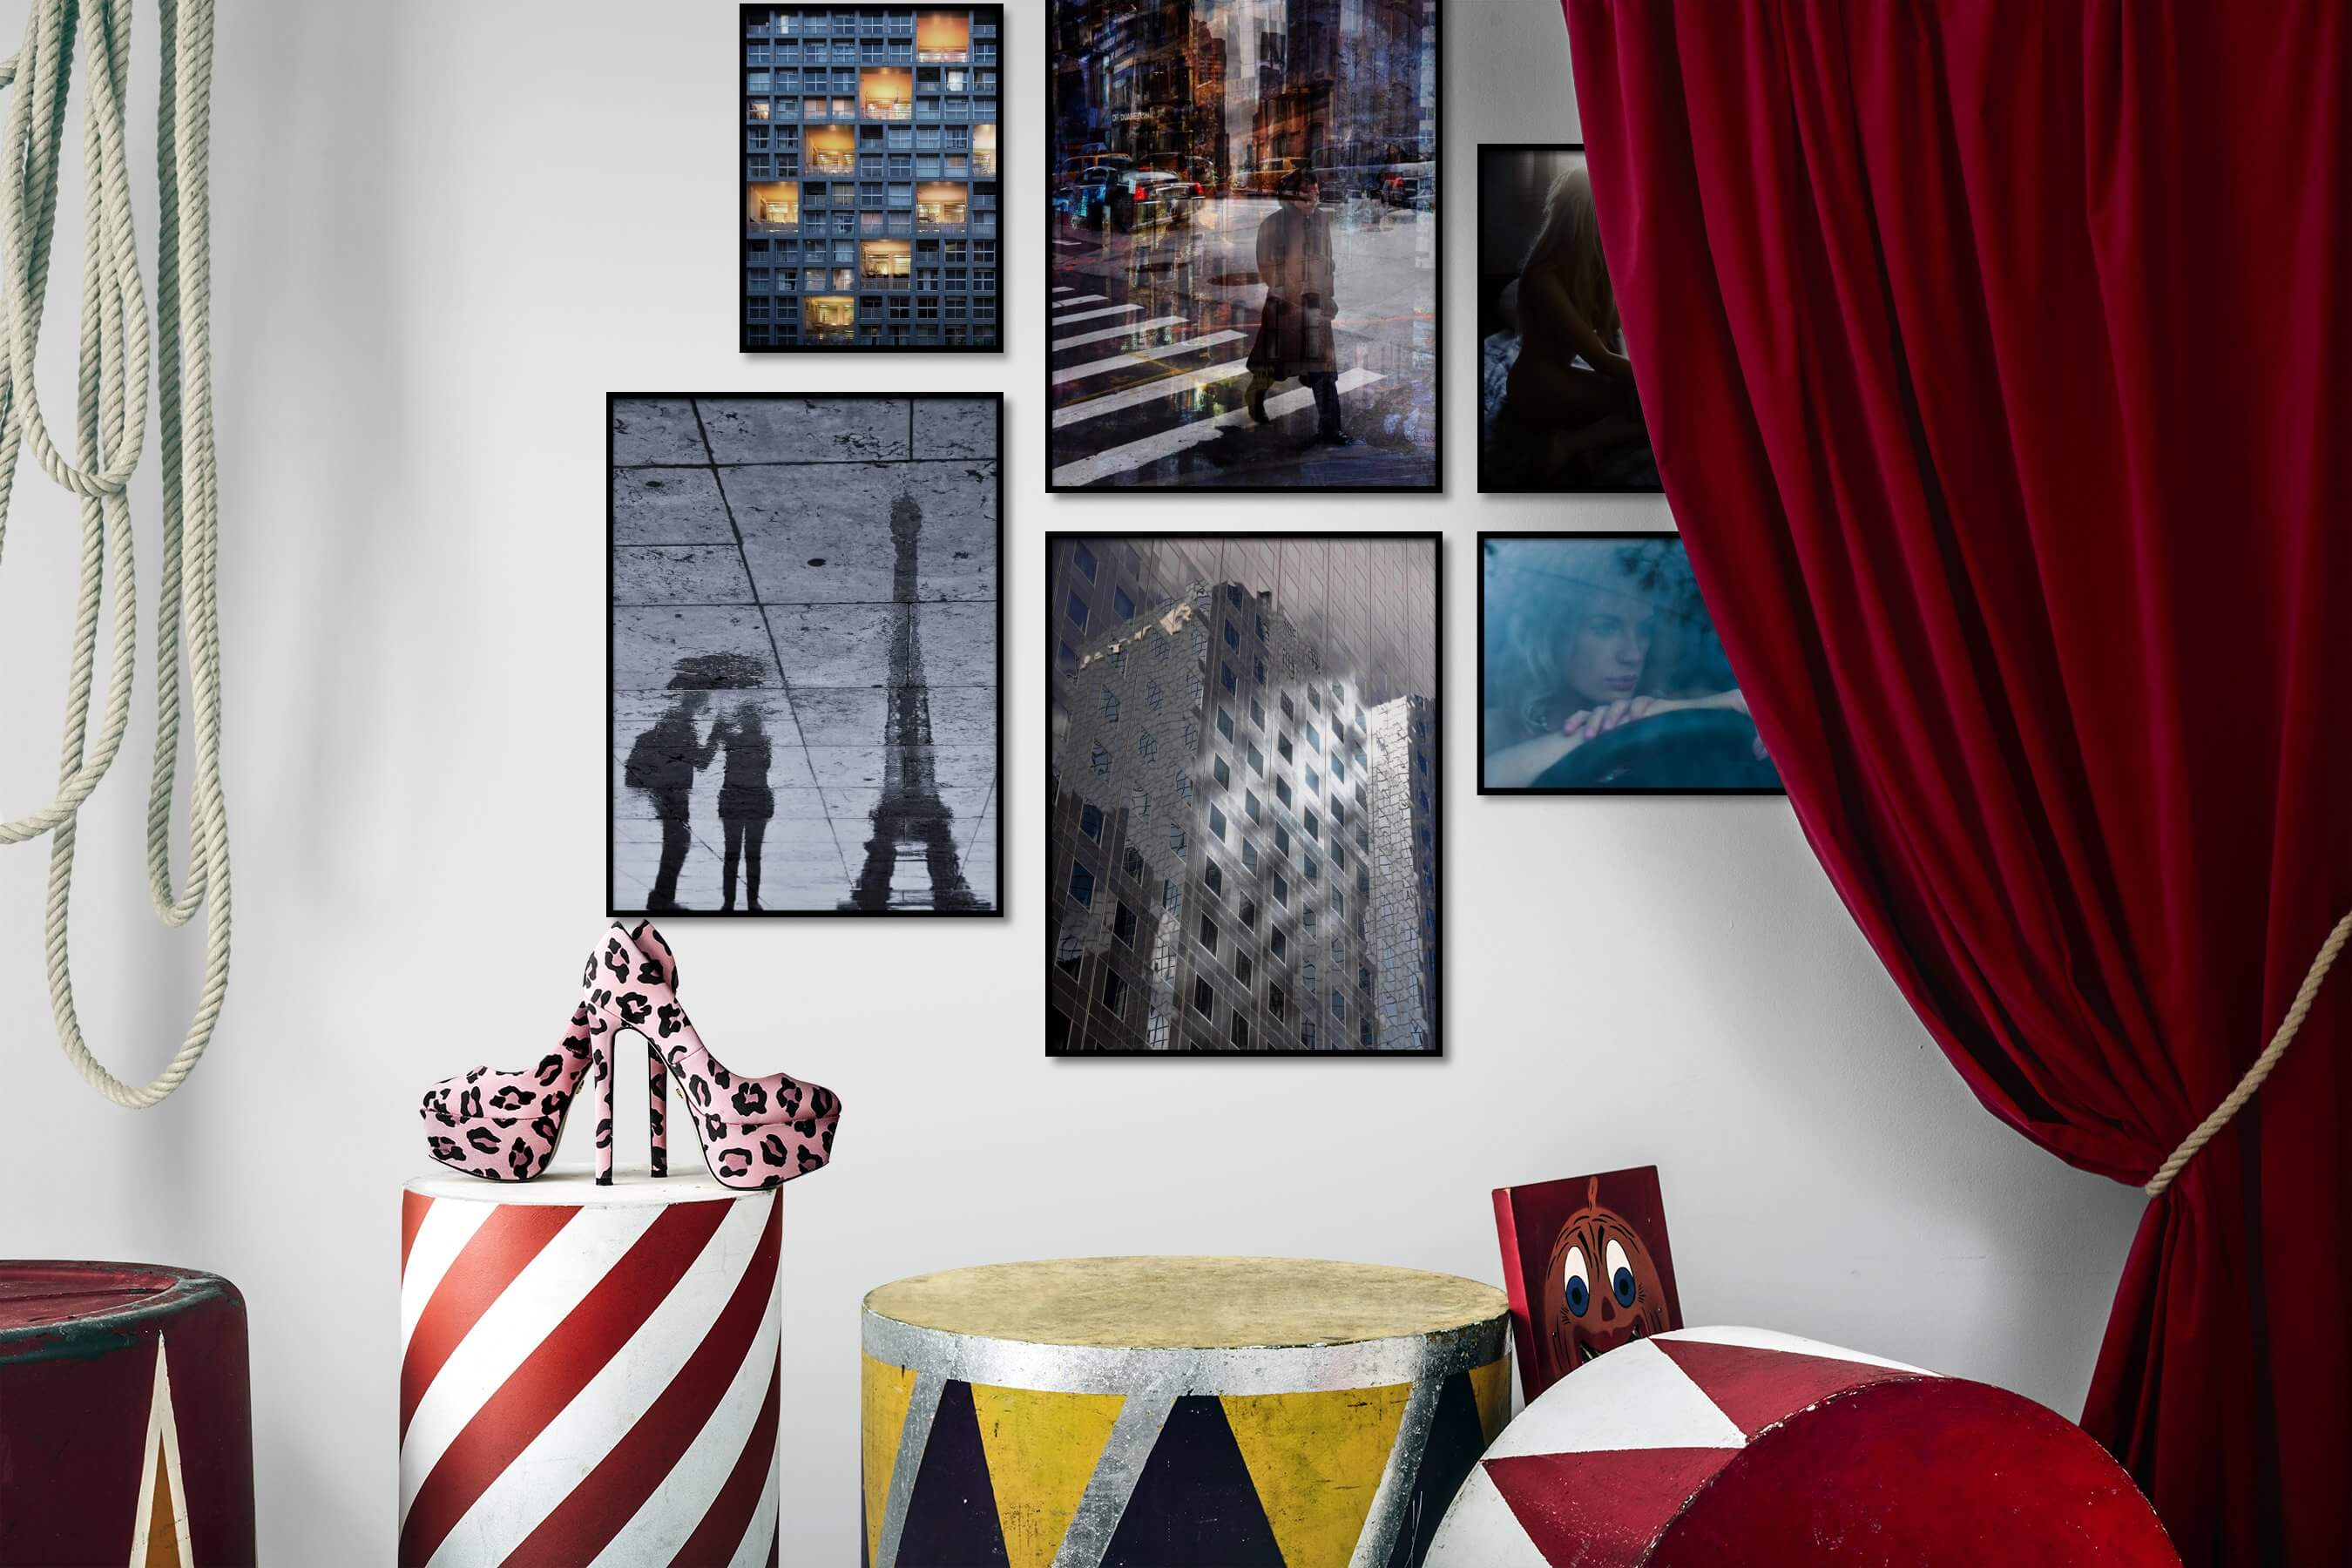 Gallery wall idea with six framed pictures arranged on a wall depicting For the Maximalist, City Life, Americana, Black & White, For the Moderate, Artsy, Bold, and Fashion & Beauty